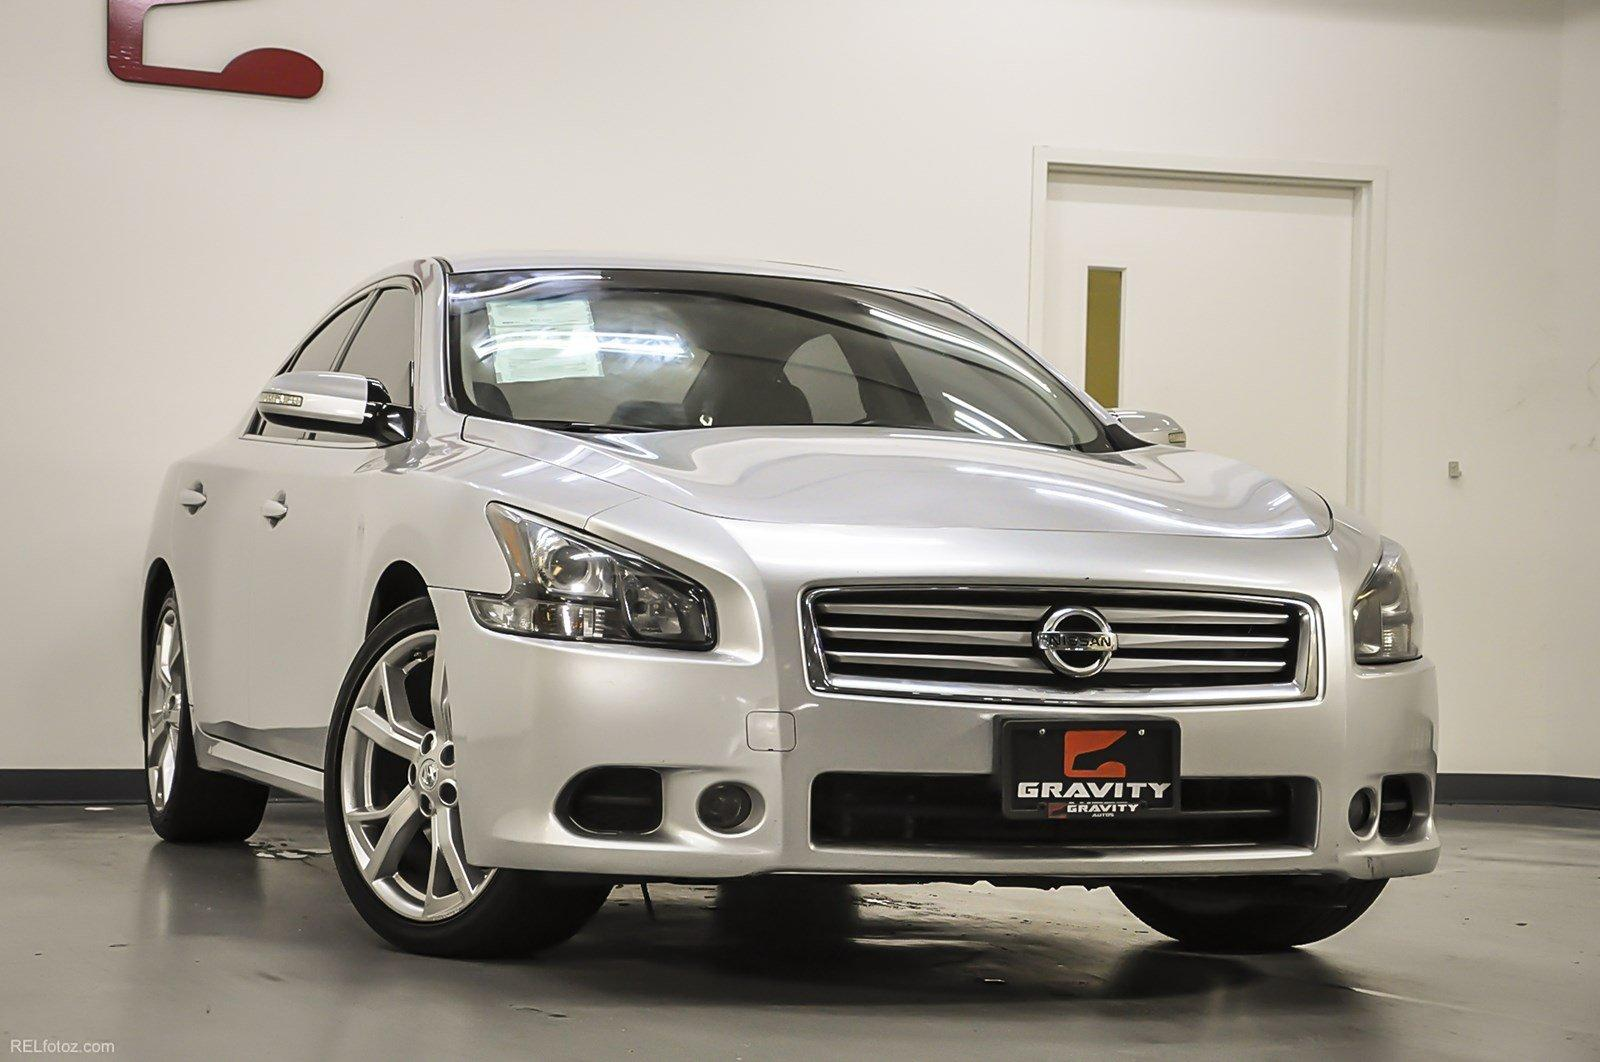 2012 nissan maxima 35 sv wsport pkg stock 860760 for sale near ga used 2012 nissan maxima 35 sv wsport pkg marietta vanachro Image collections